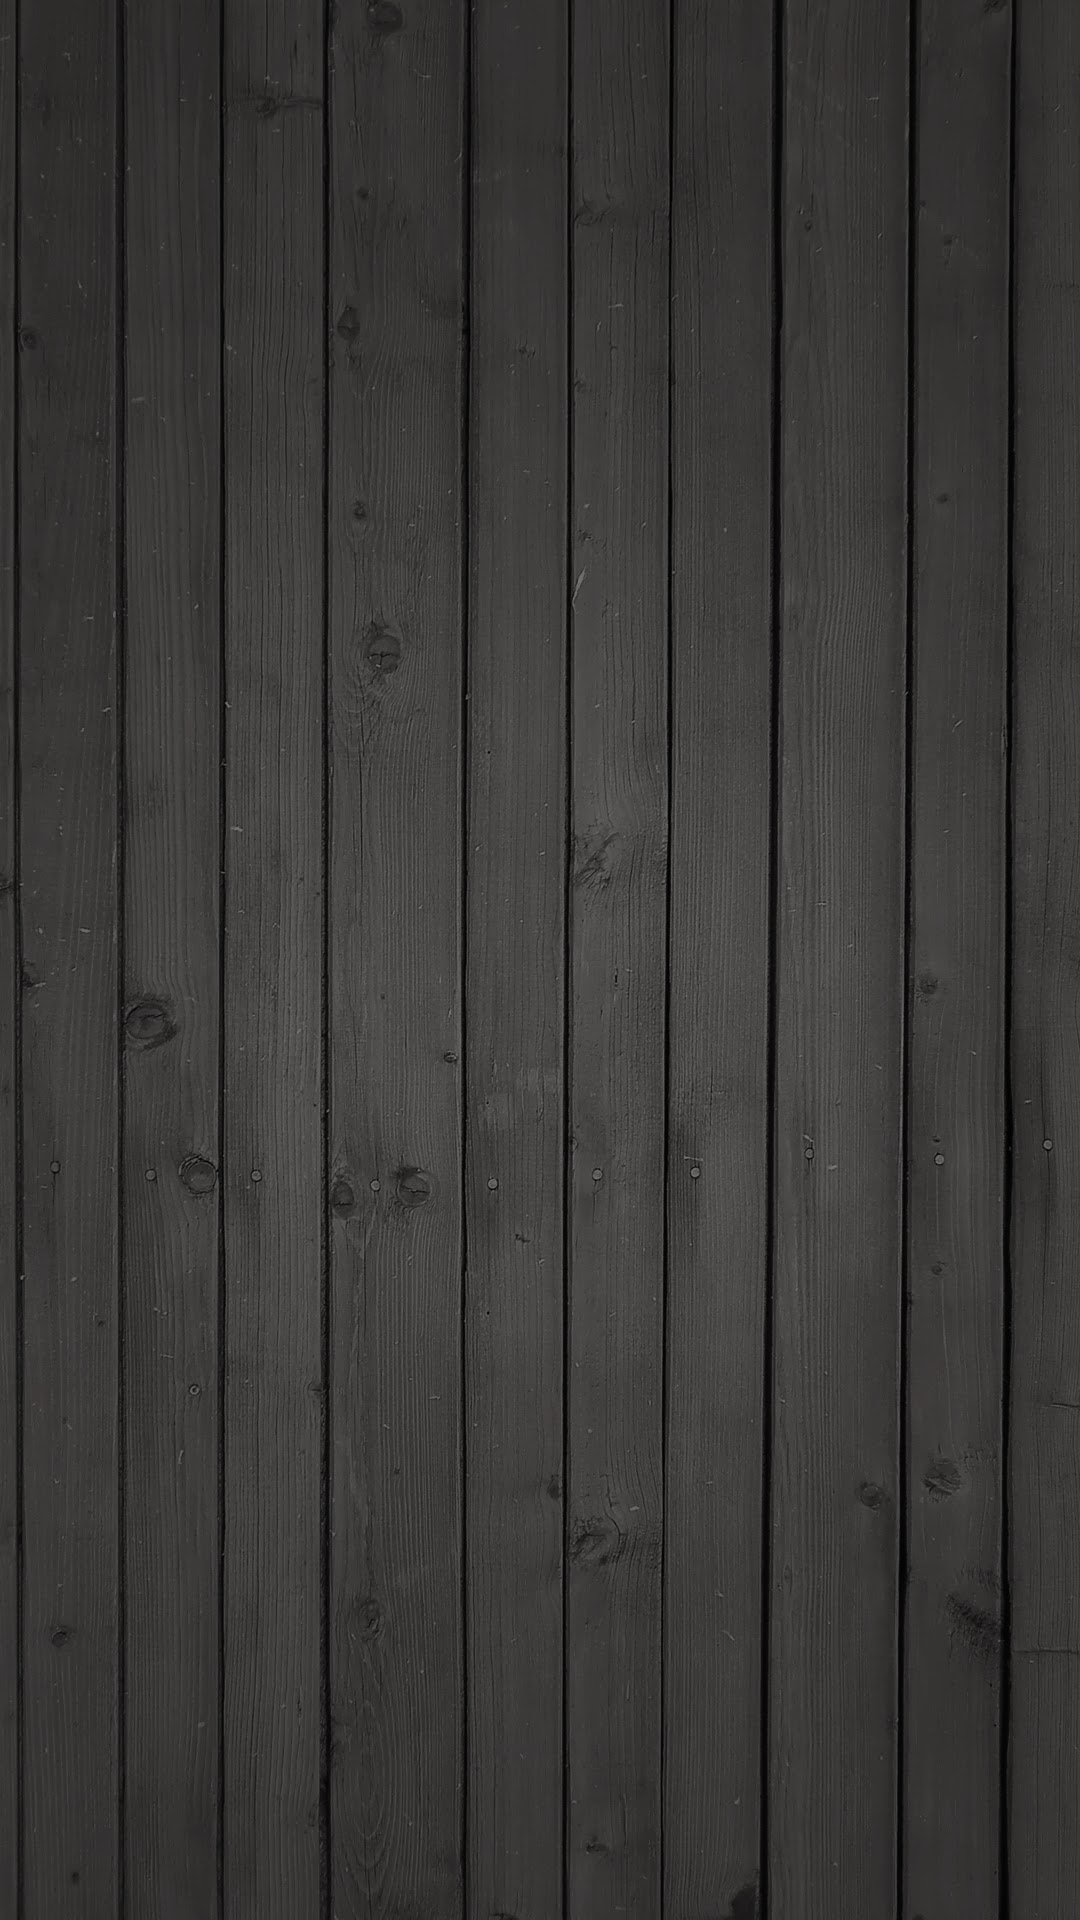 Abstract wood htc one wallpaper